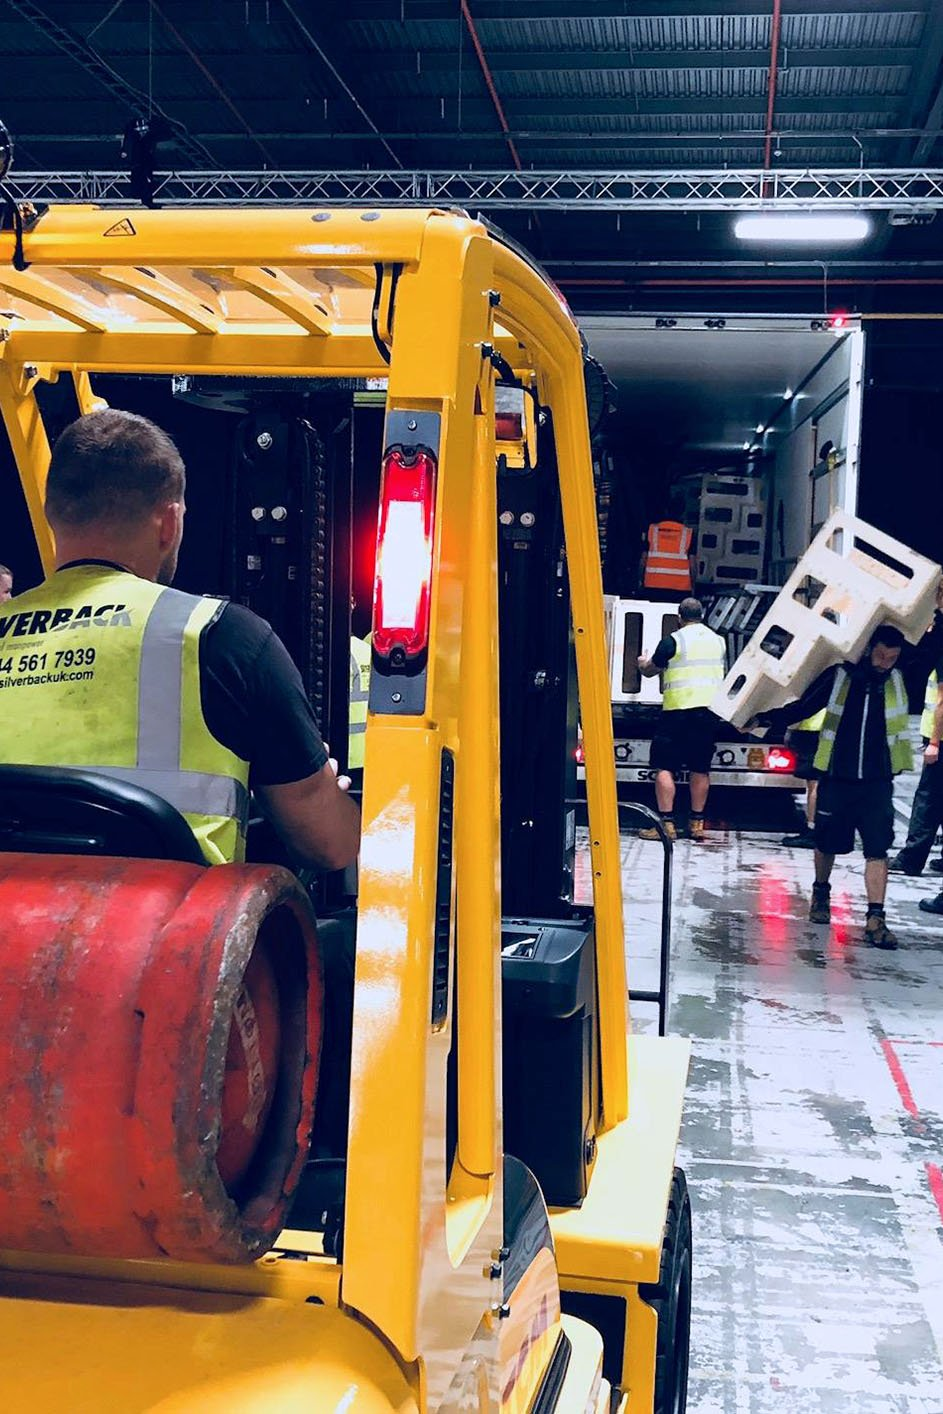 Silverback team with forklift